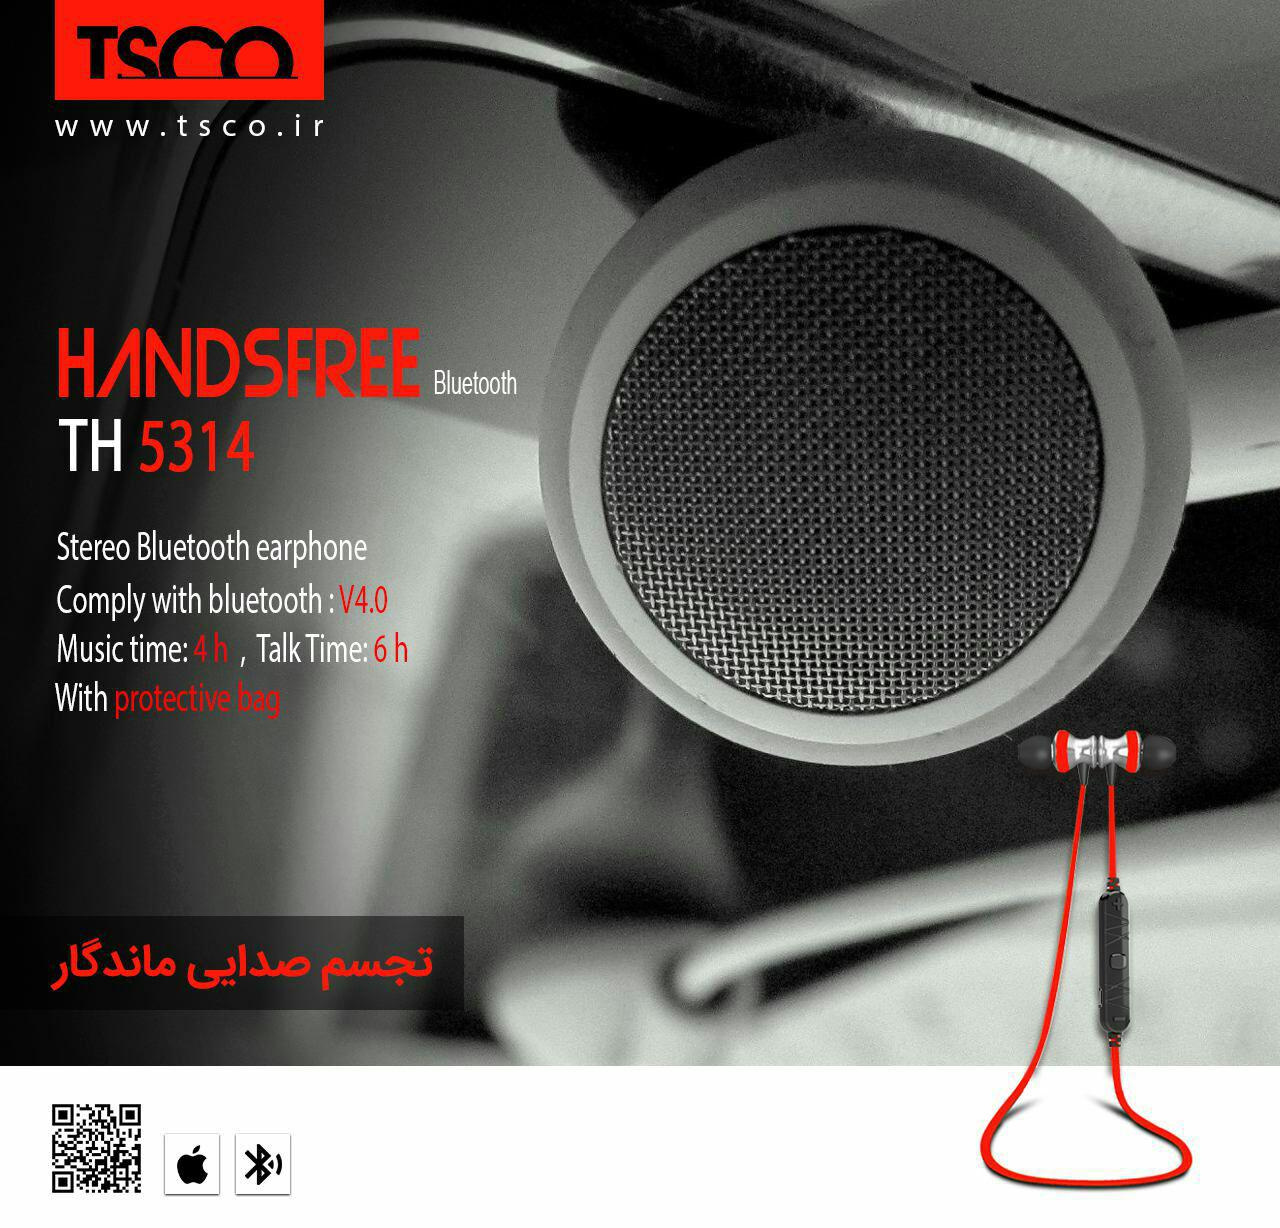 TSCO 5314 Headphone